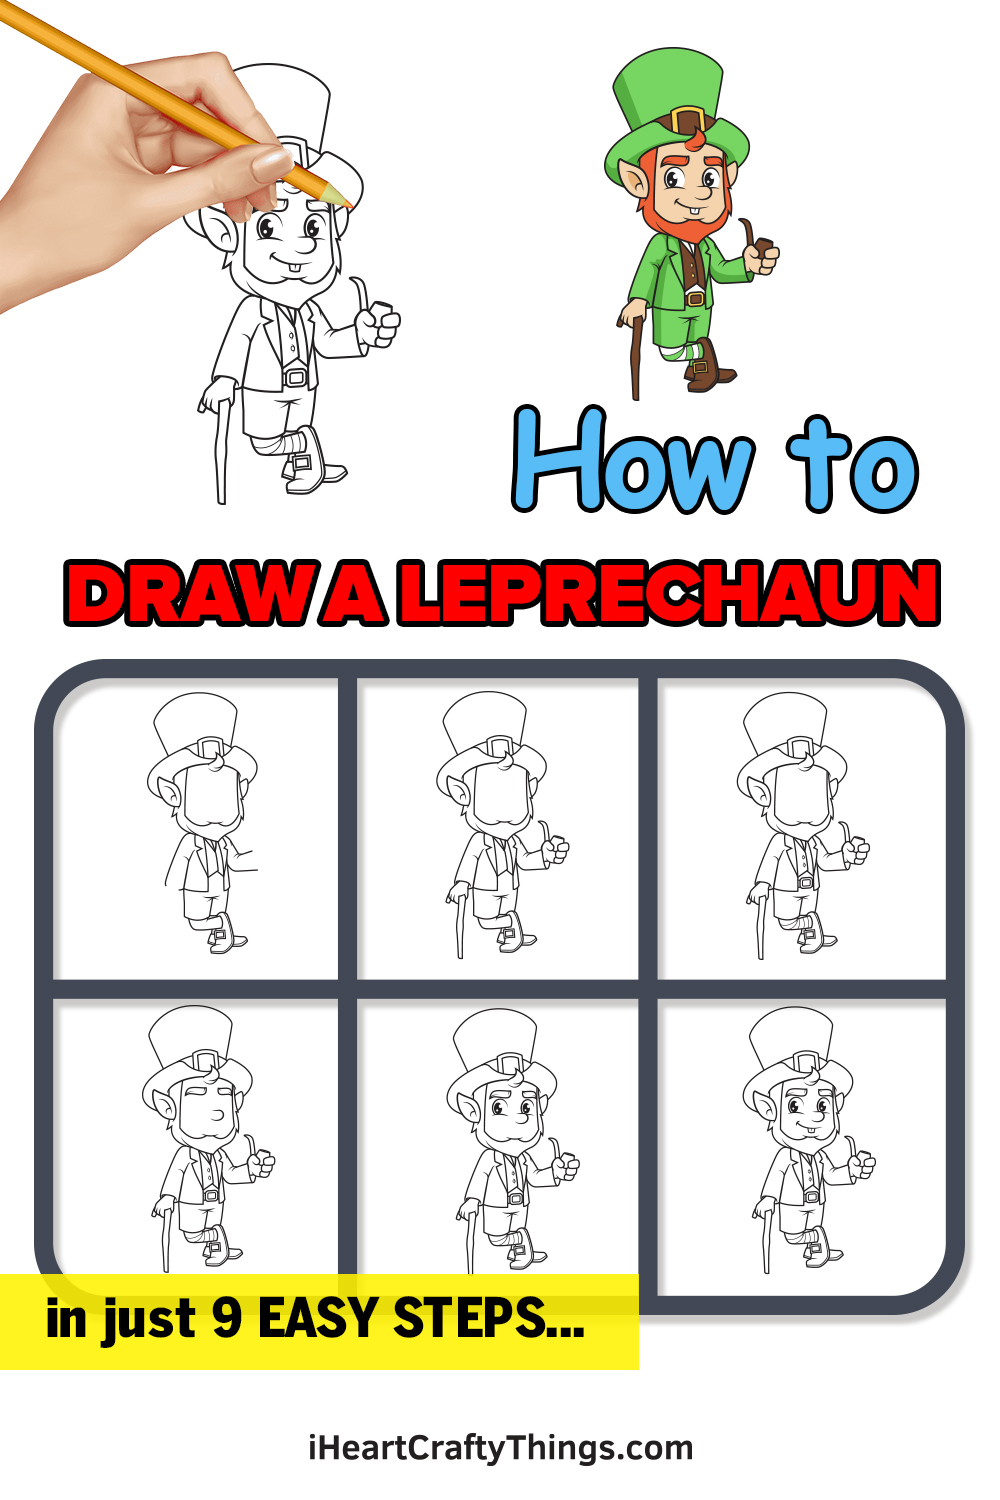 How to Draw a Leprechaun in 9 Easy Steps